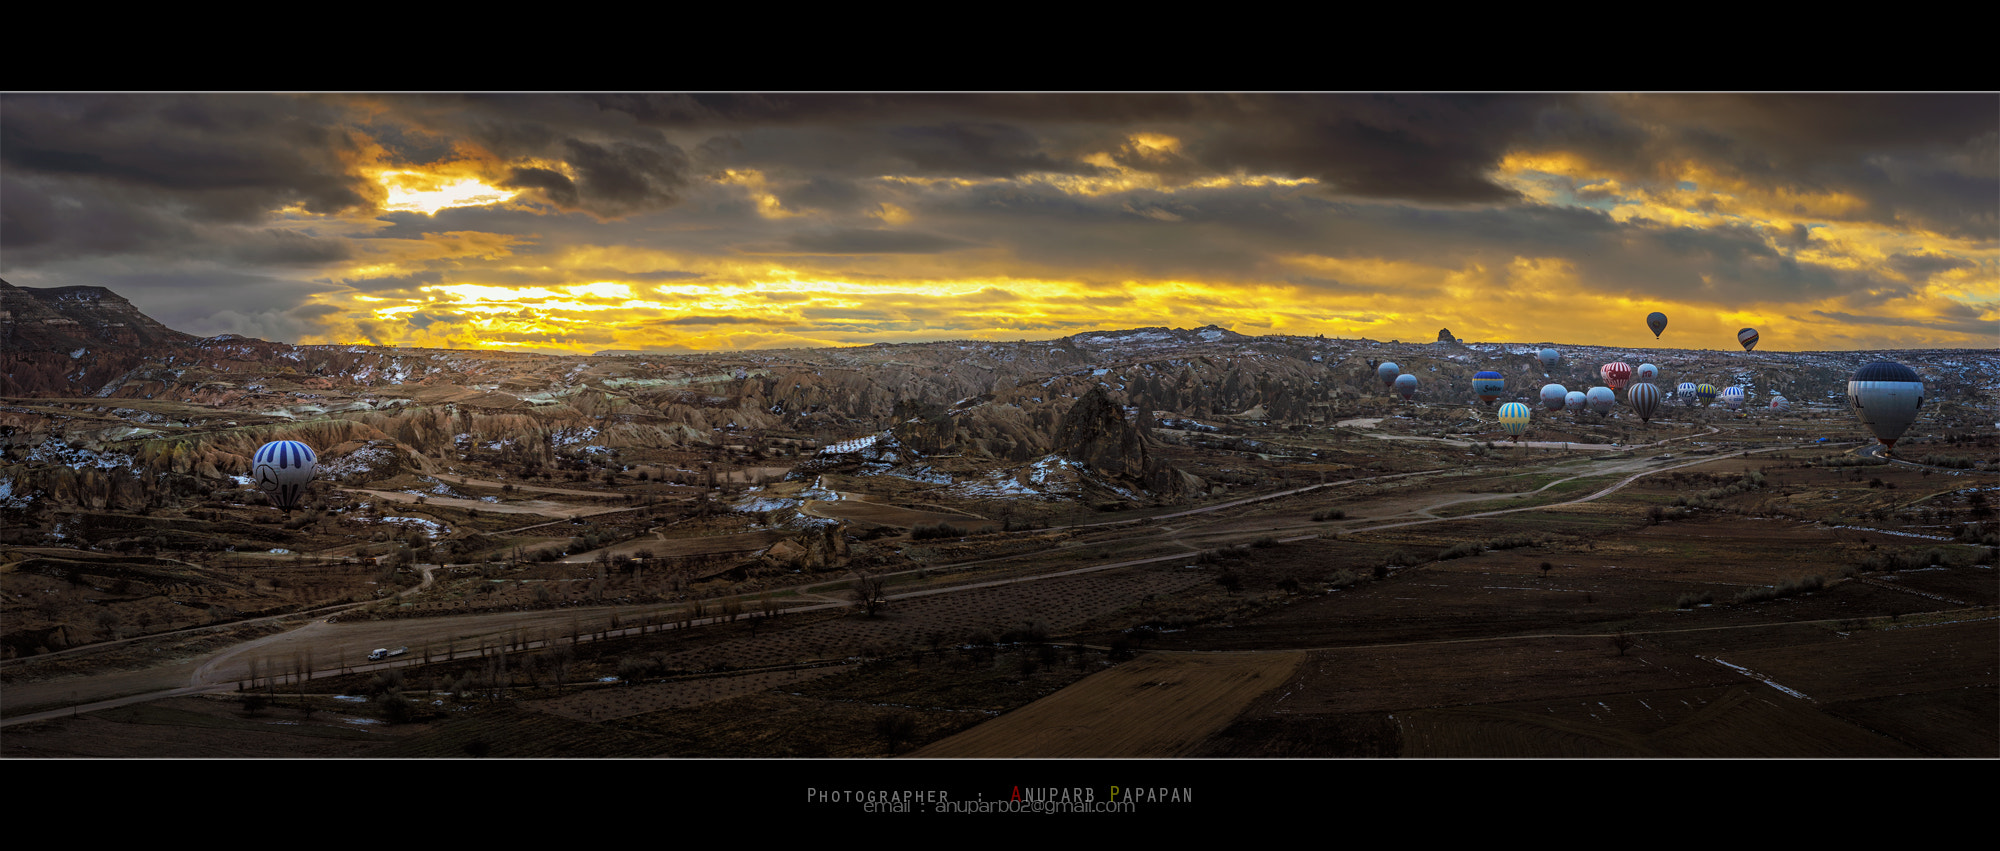 Photograph Panorama View from Sky by Anuparb Papapan on 500px